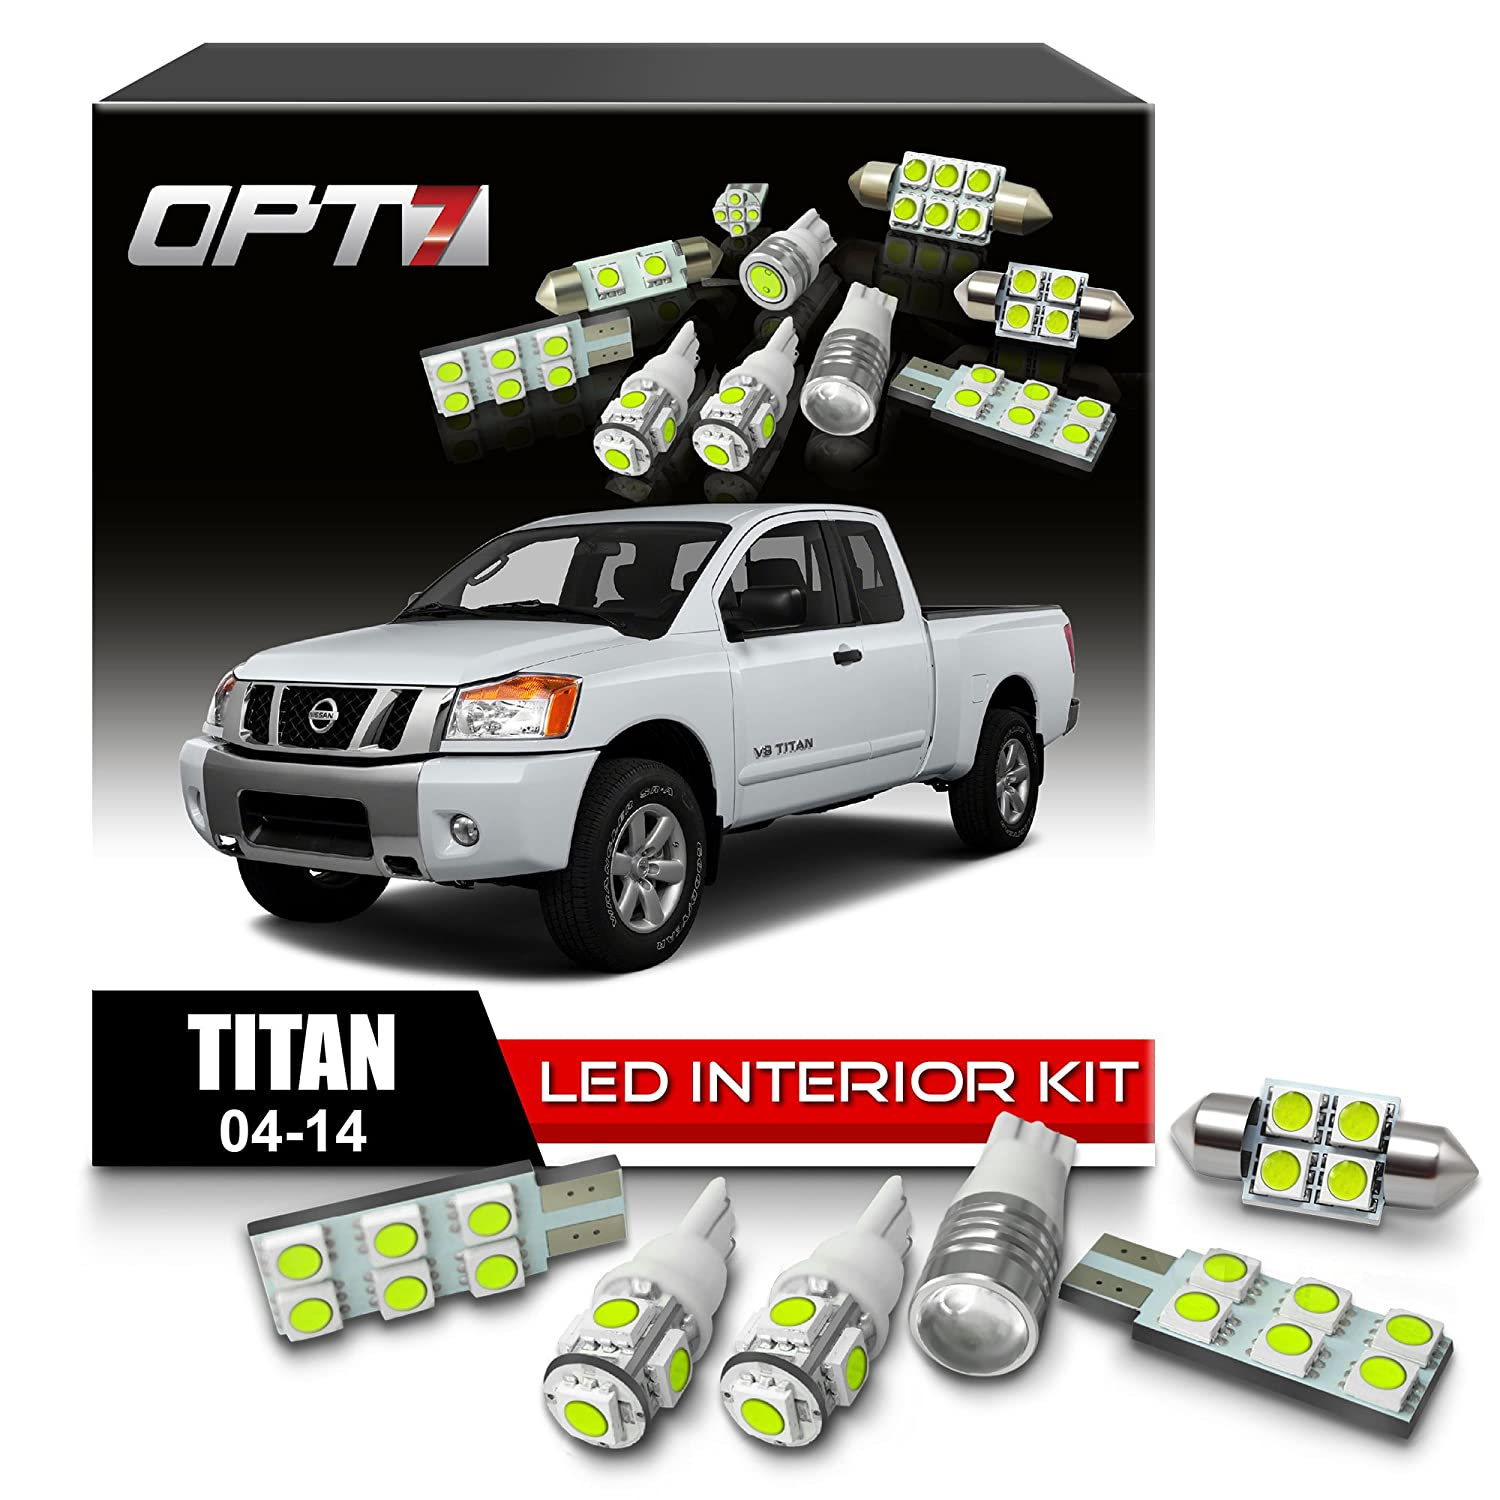 Opt7 16pc Interior Led Replacement Light Bulbs Package 07 Titan Fuse Box Set Kit For 04 14 Nissan 6000k White Dome Map Courtesy License Plate And More